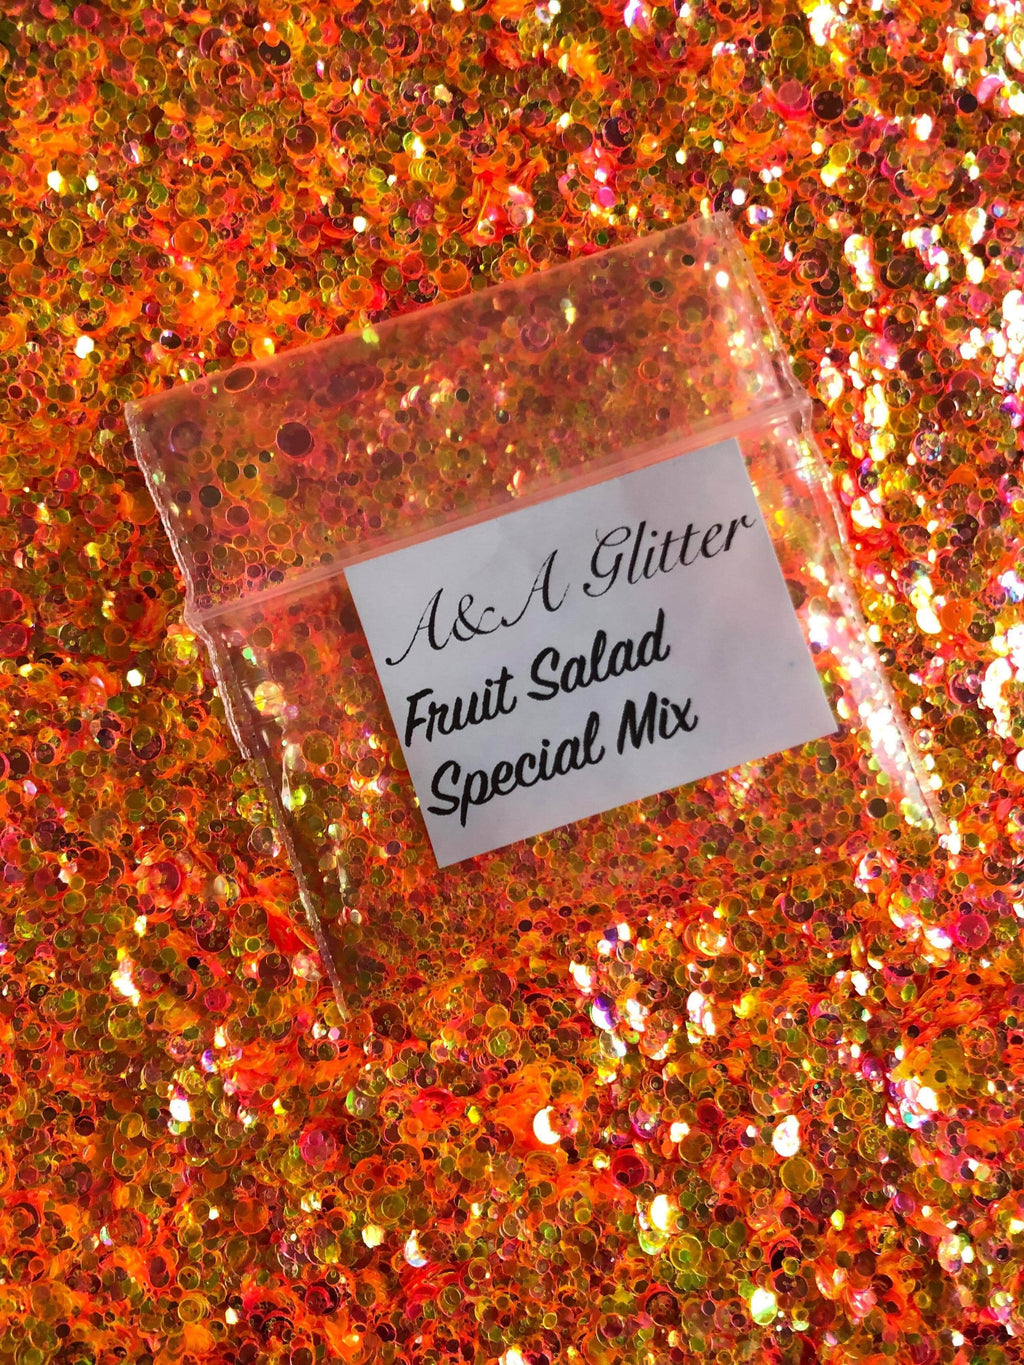 Fruit Salad Special Mix - A&A Glitter